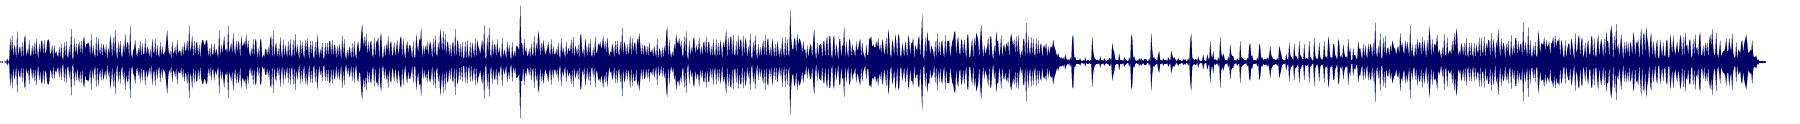 waveform of track #68599